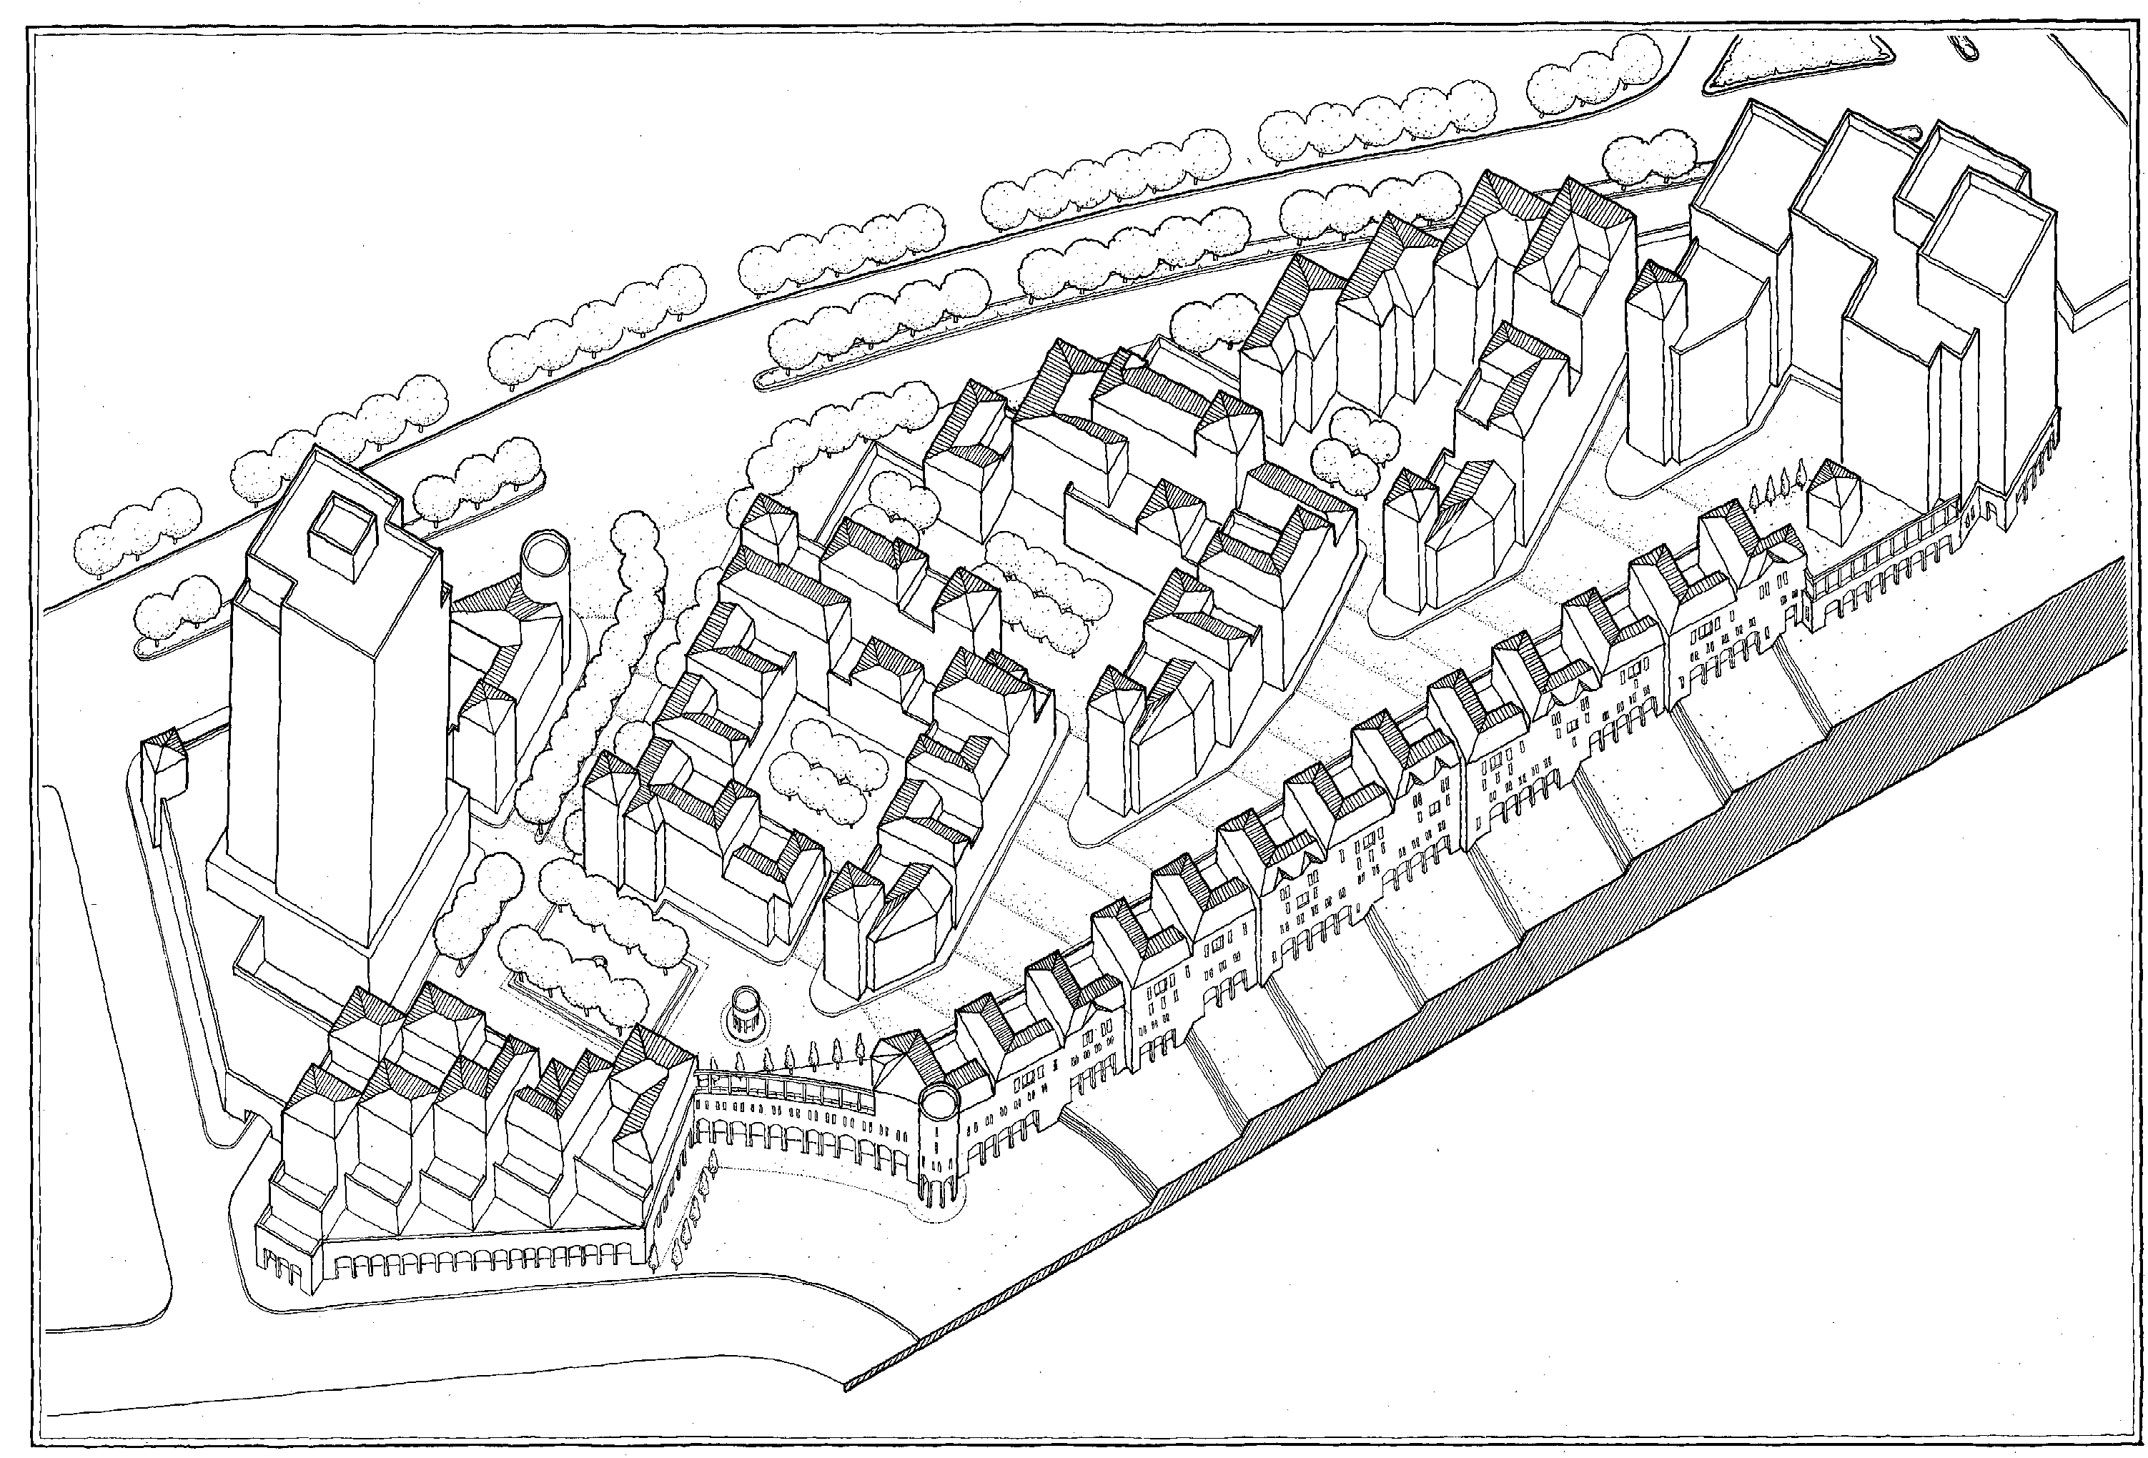 Santa Fe Master Plan - Axon of Housing,